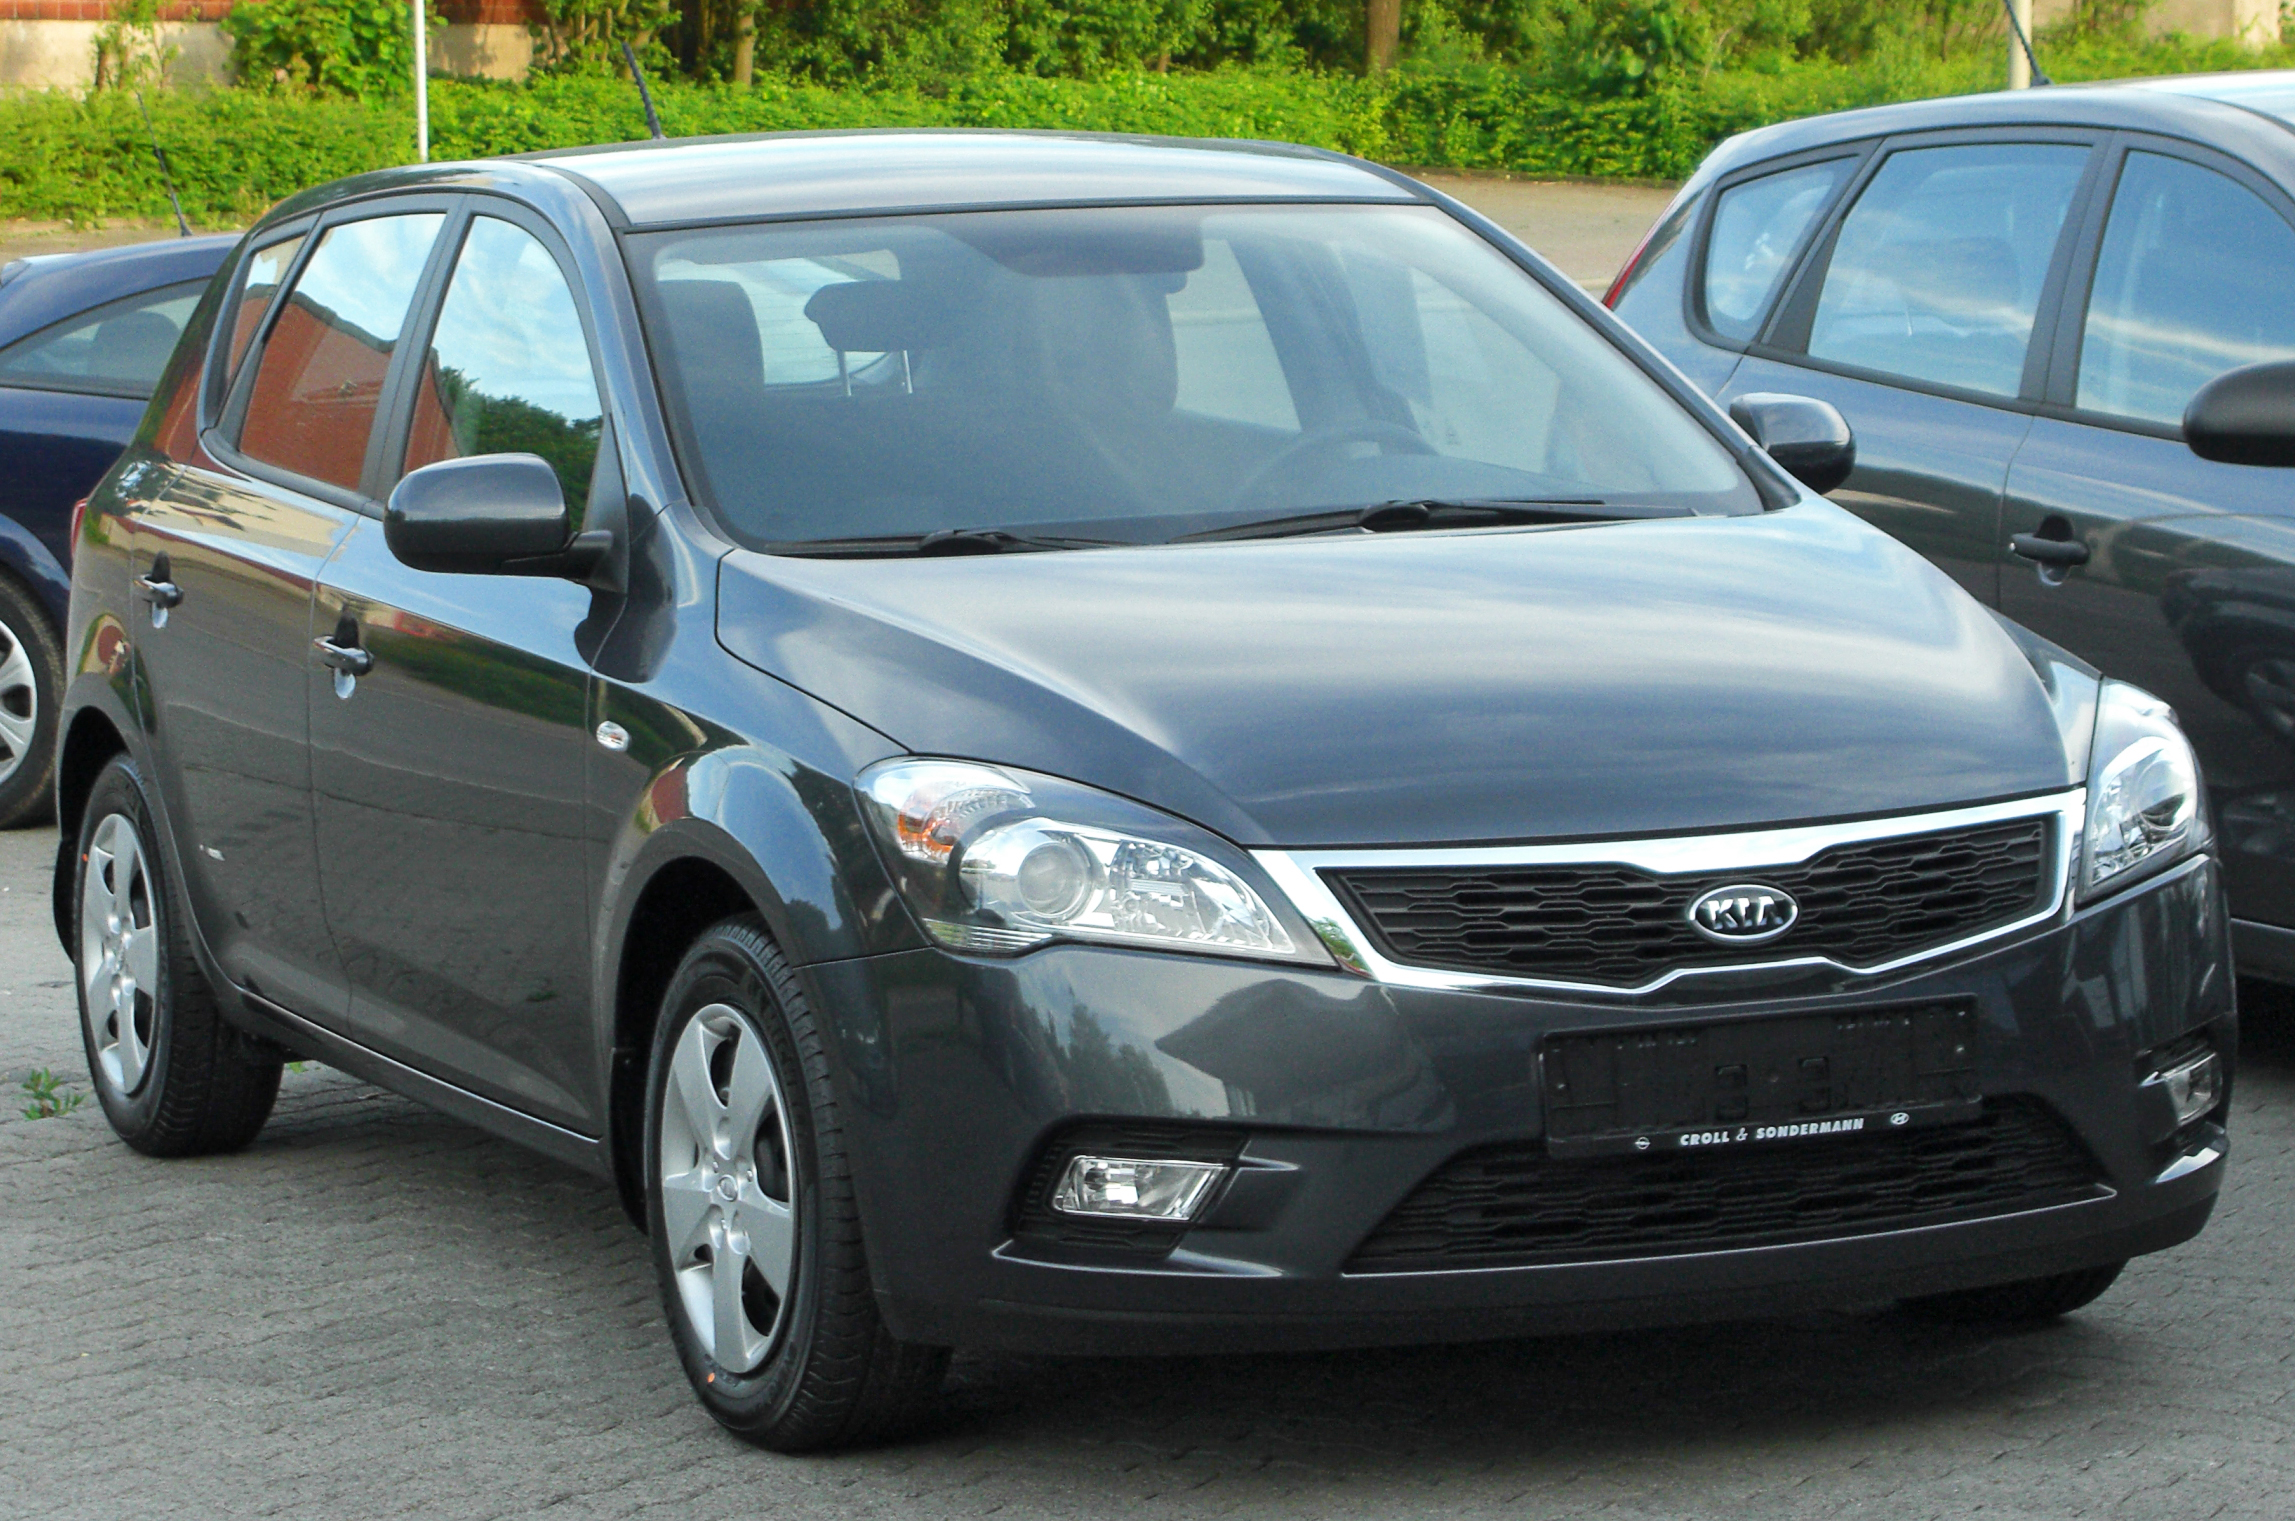 Kia Ceed Wikipedia Battery Light Bulb And Wire Http Govinsciencezoneblogspotcom 2011 Facelift Front